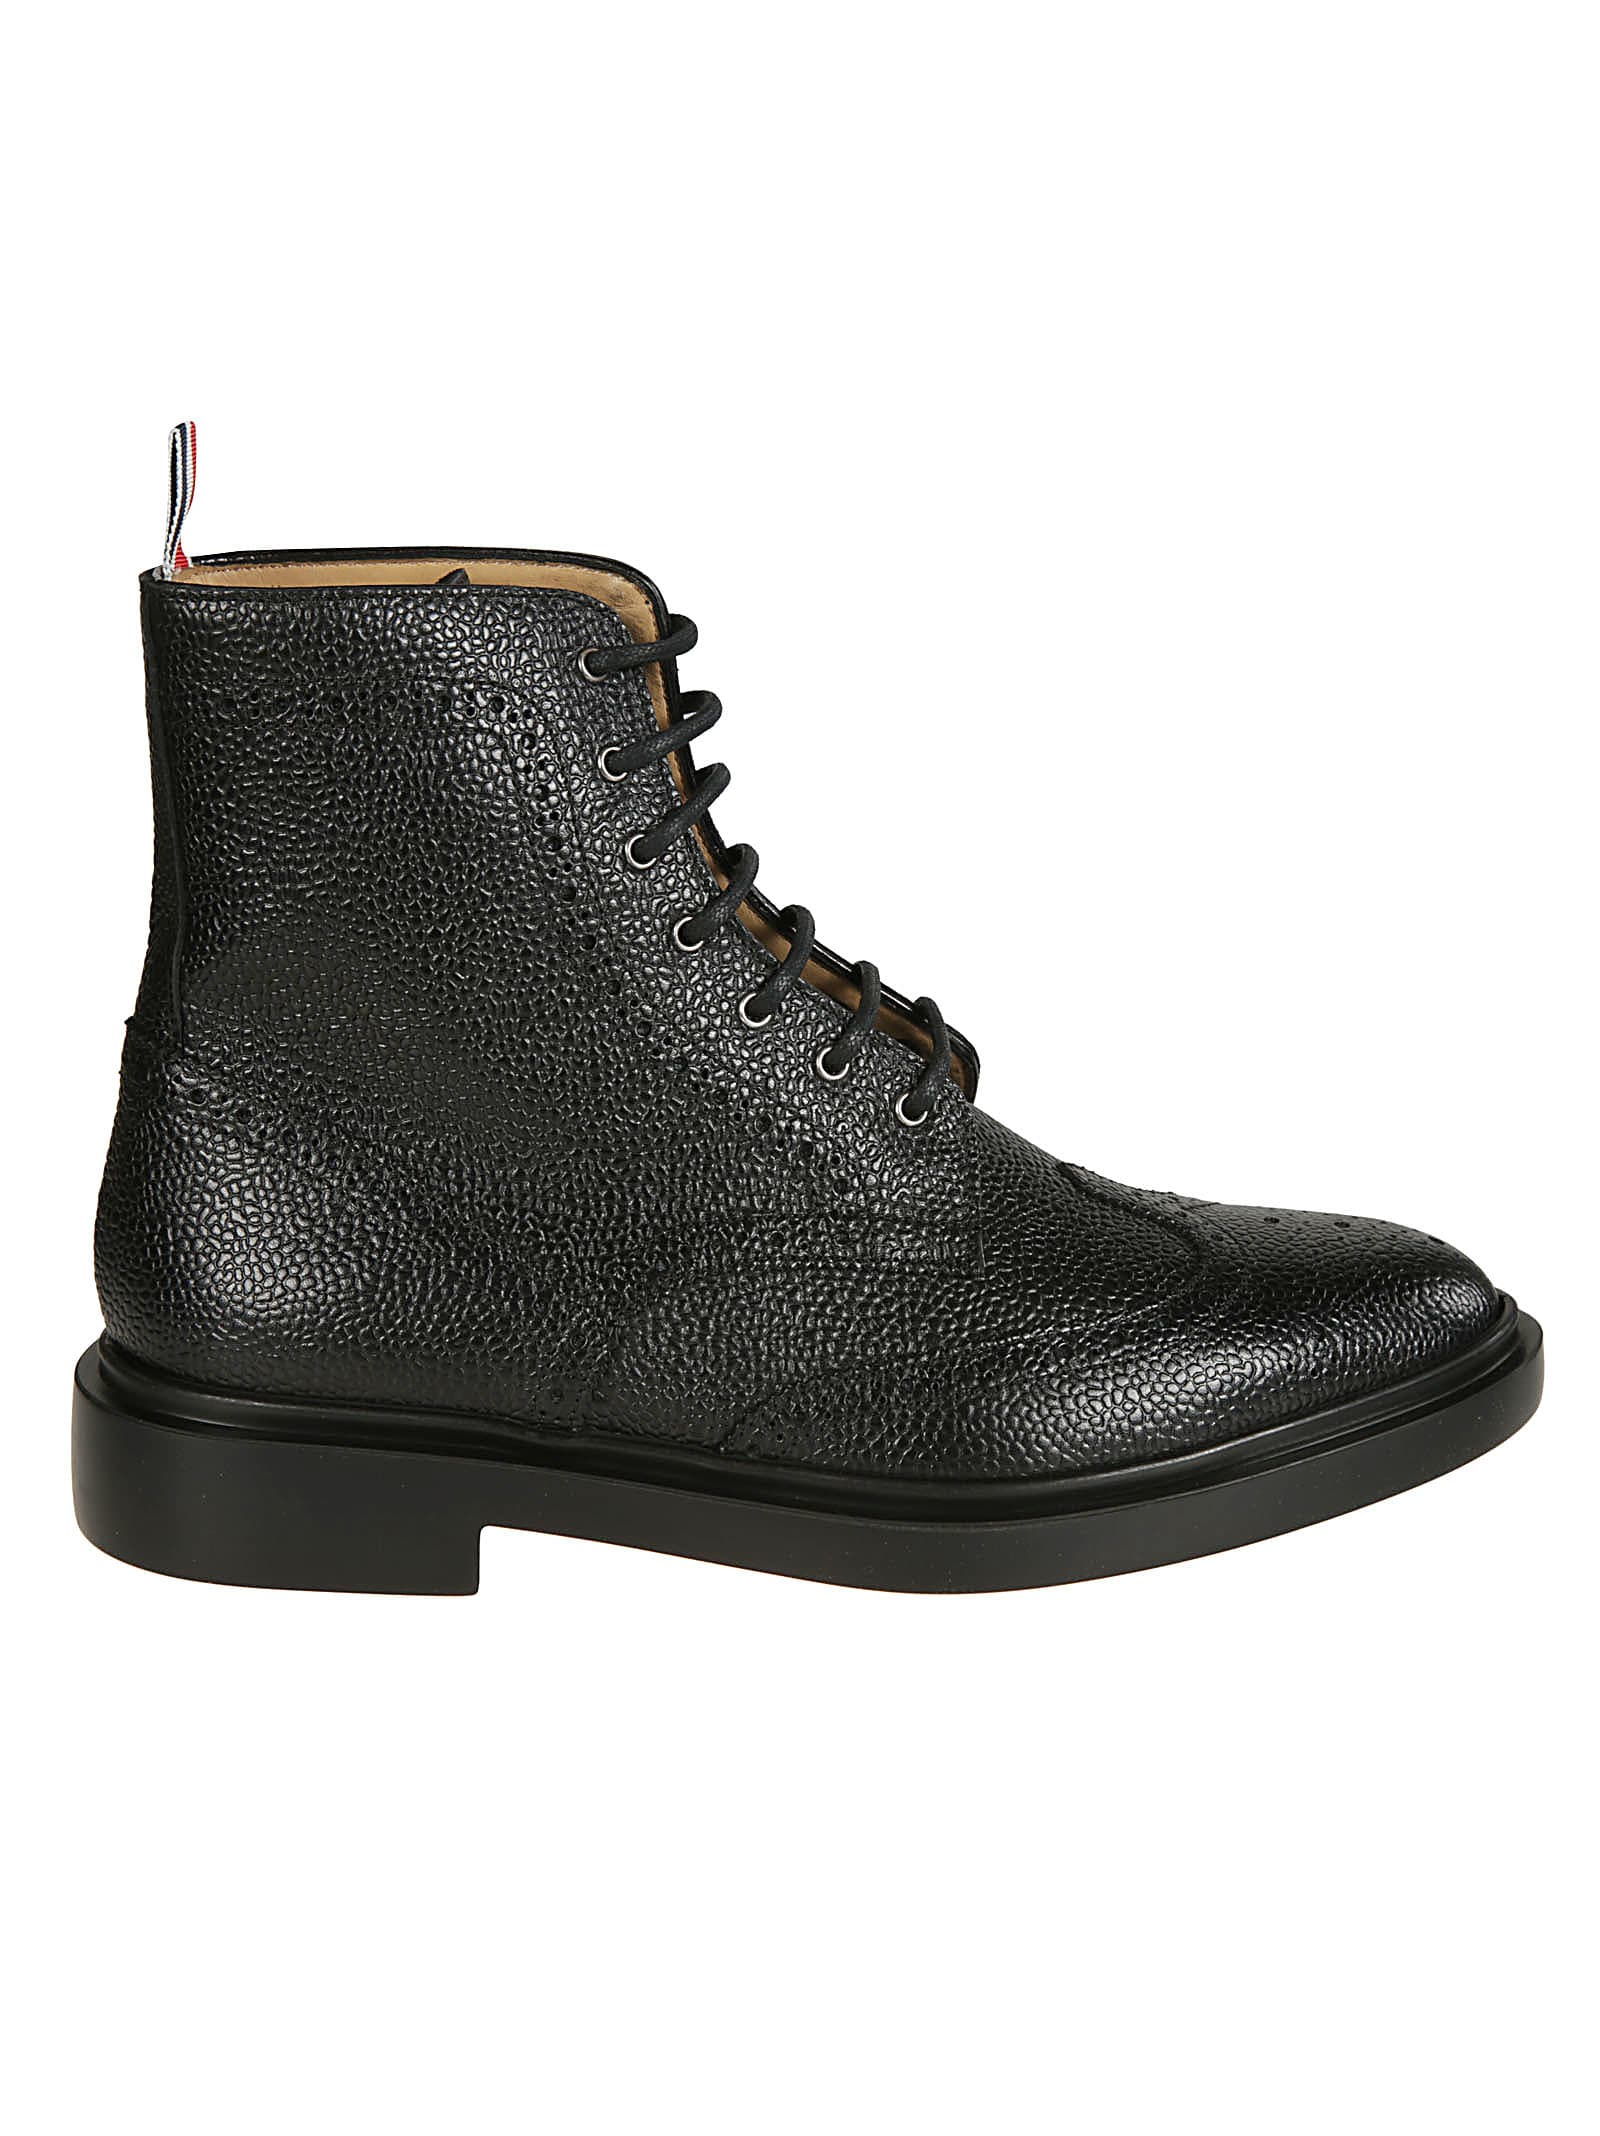 Thom Browne Wingtip Lace-up Boots